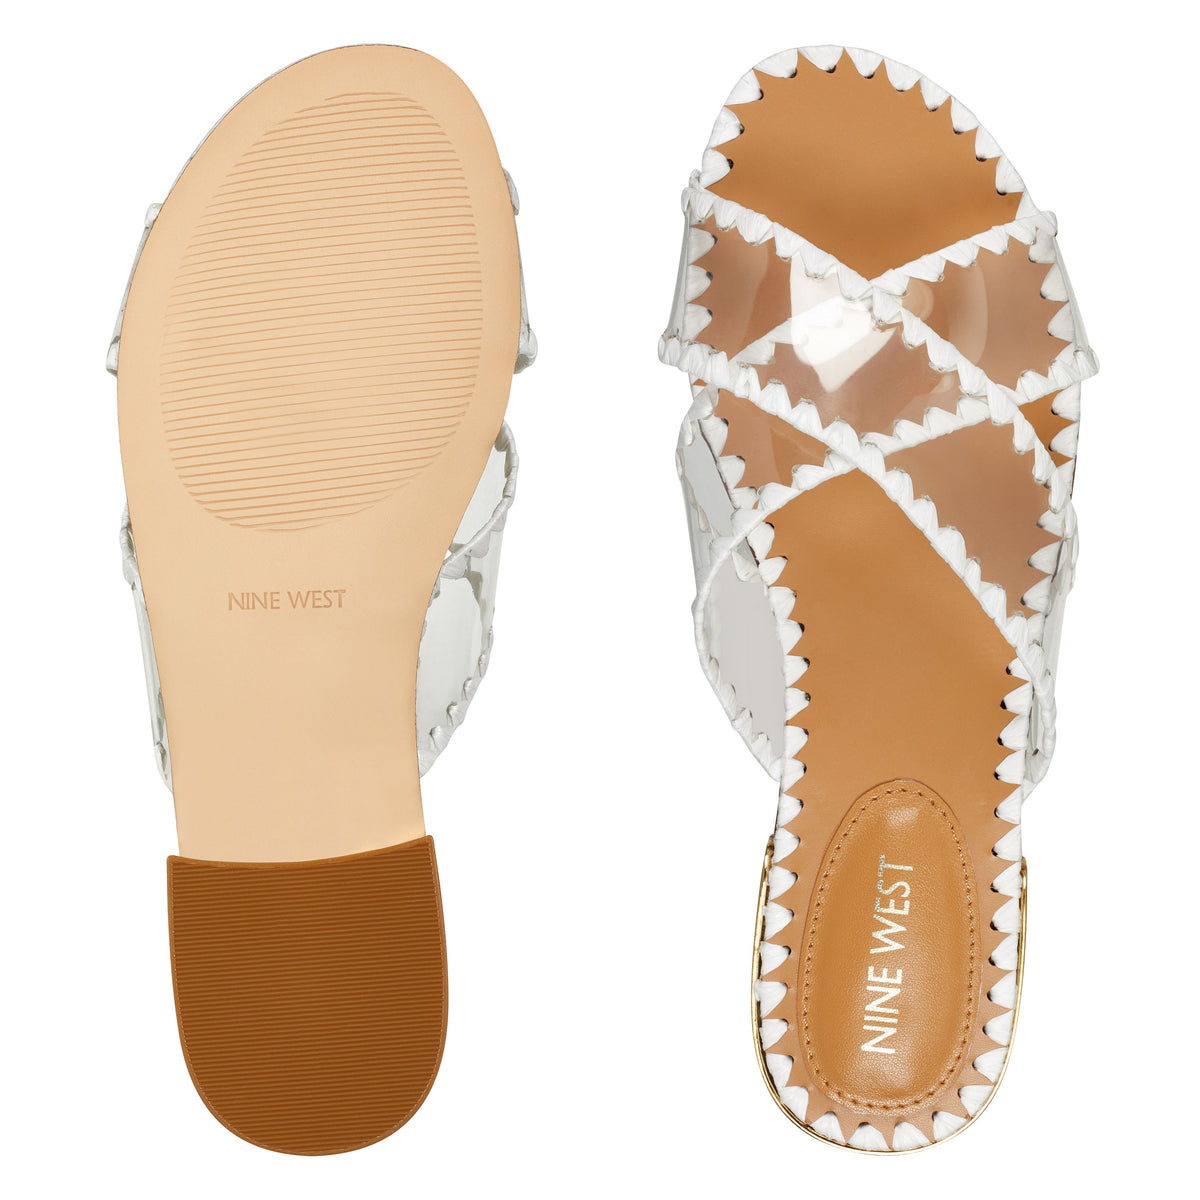 ieni-flat-slide-sandals-in-white-clear